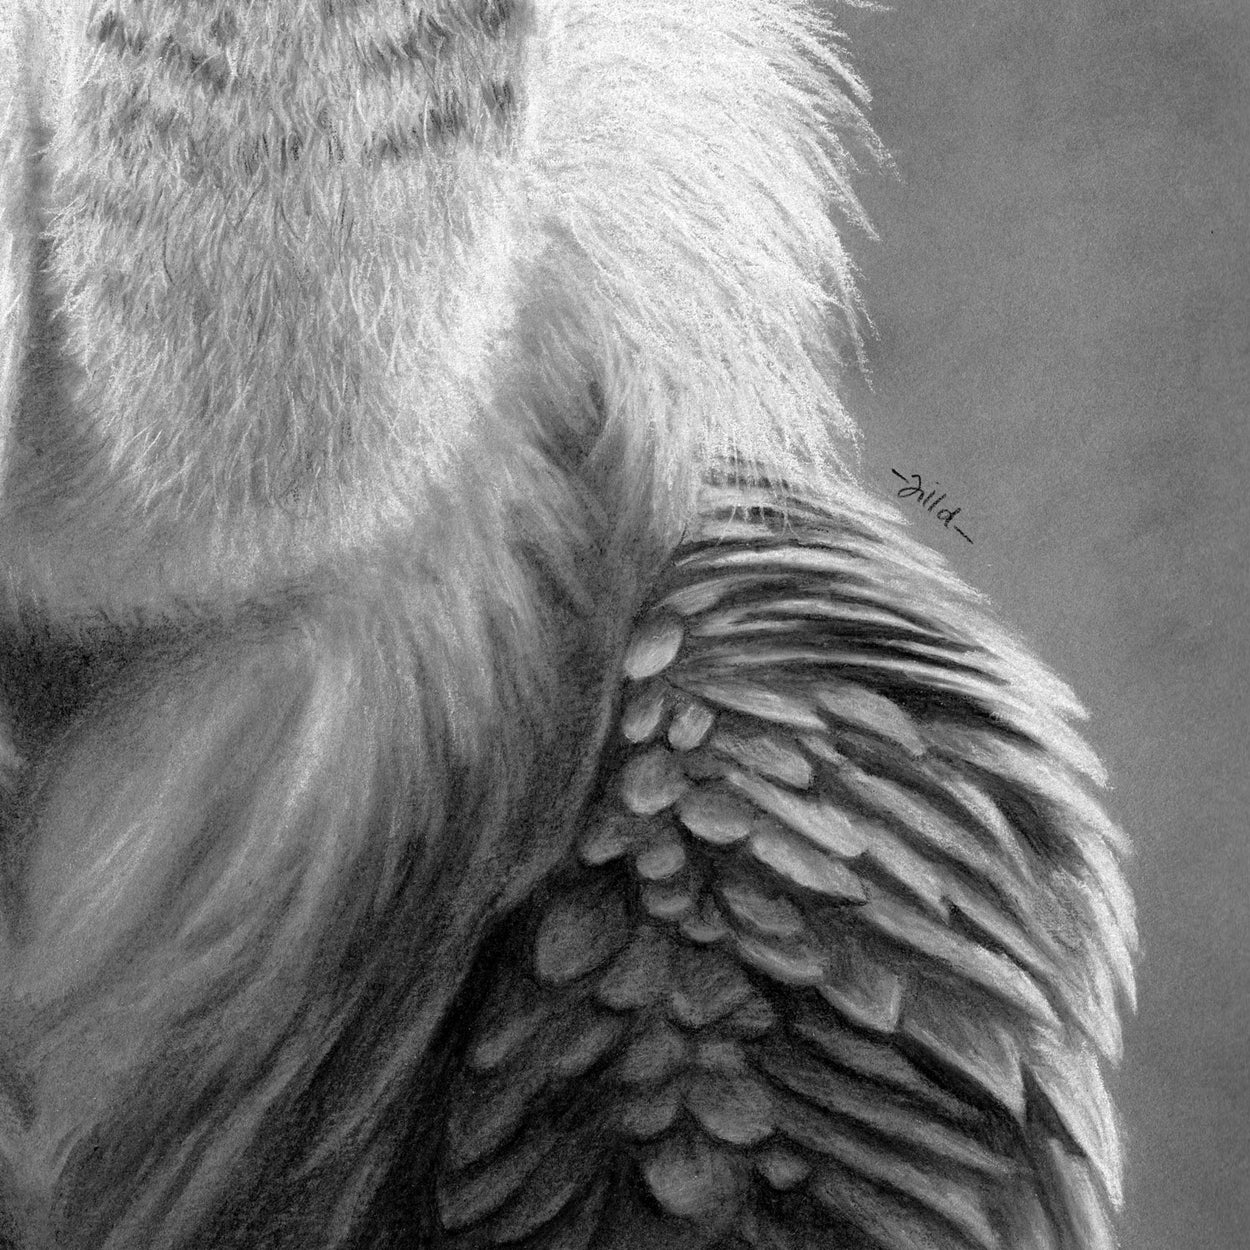 Griffon Vulture Feathers Close-up 3 - Jill Dimond